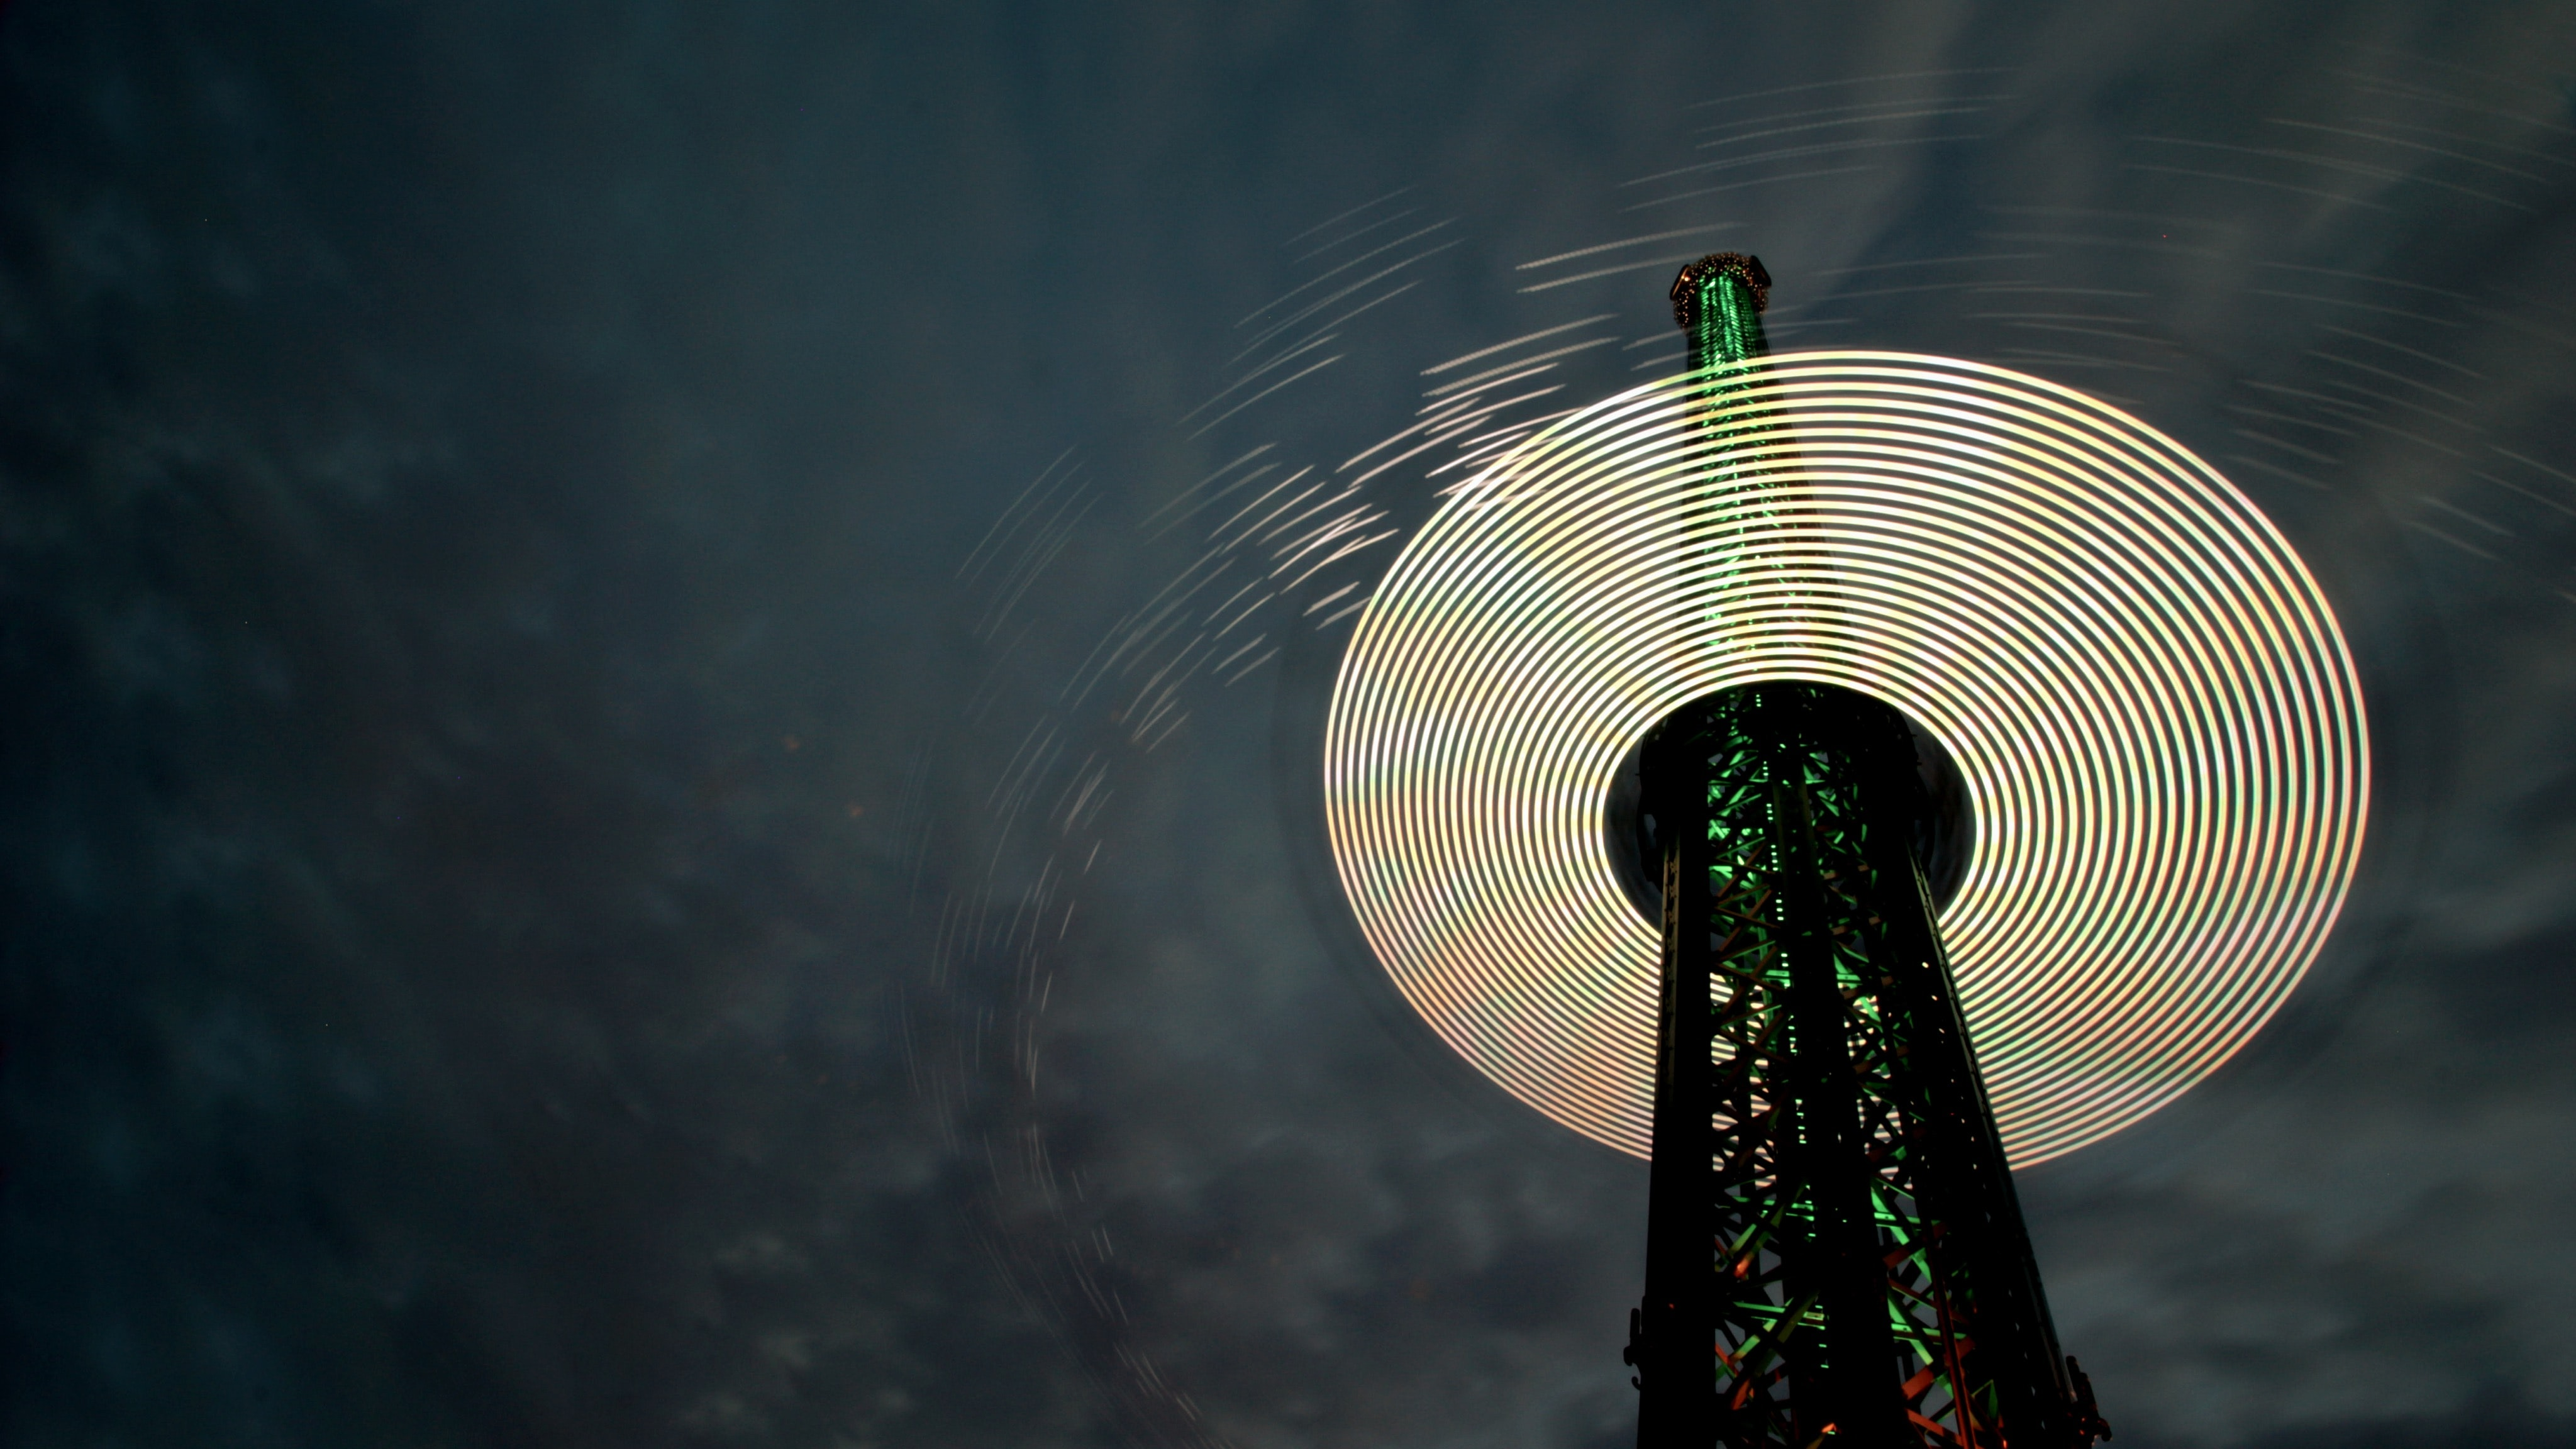 An image of the Prater Tower with a cloudy night sky as the backdrop